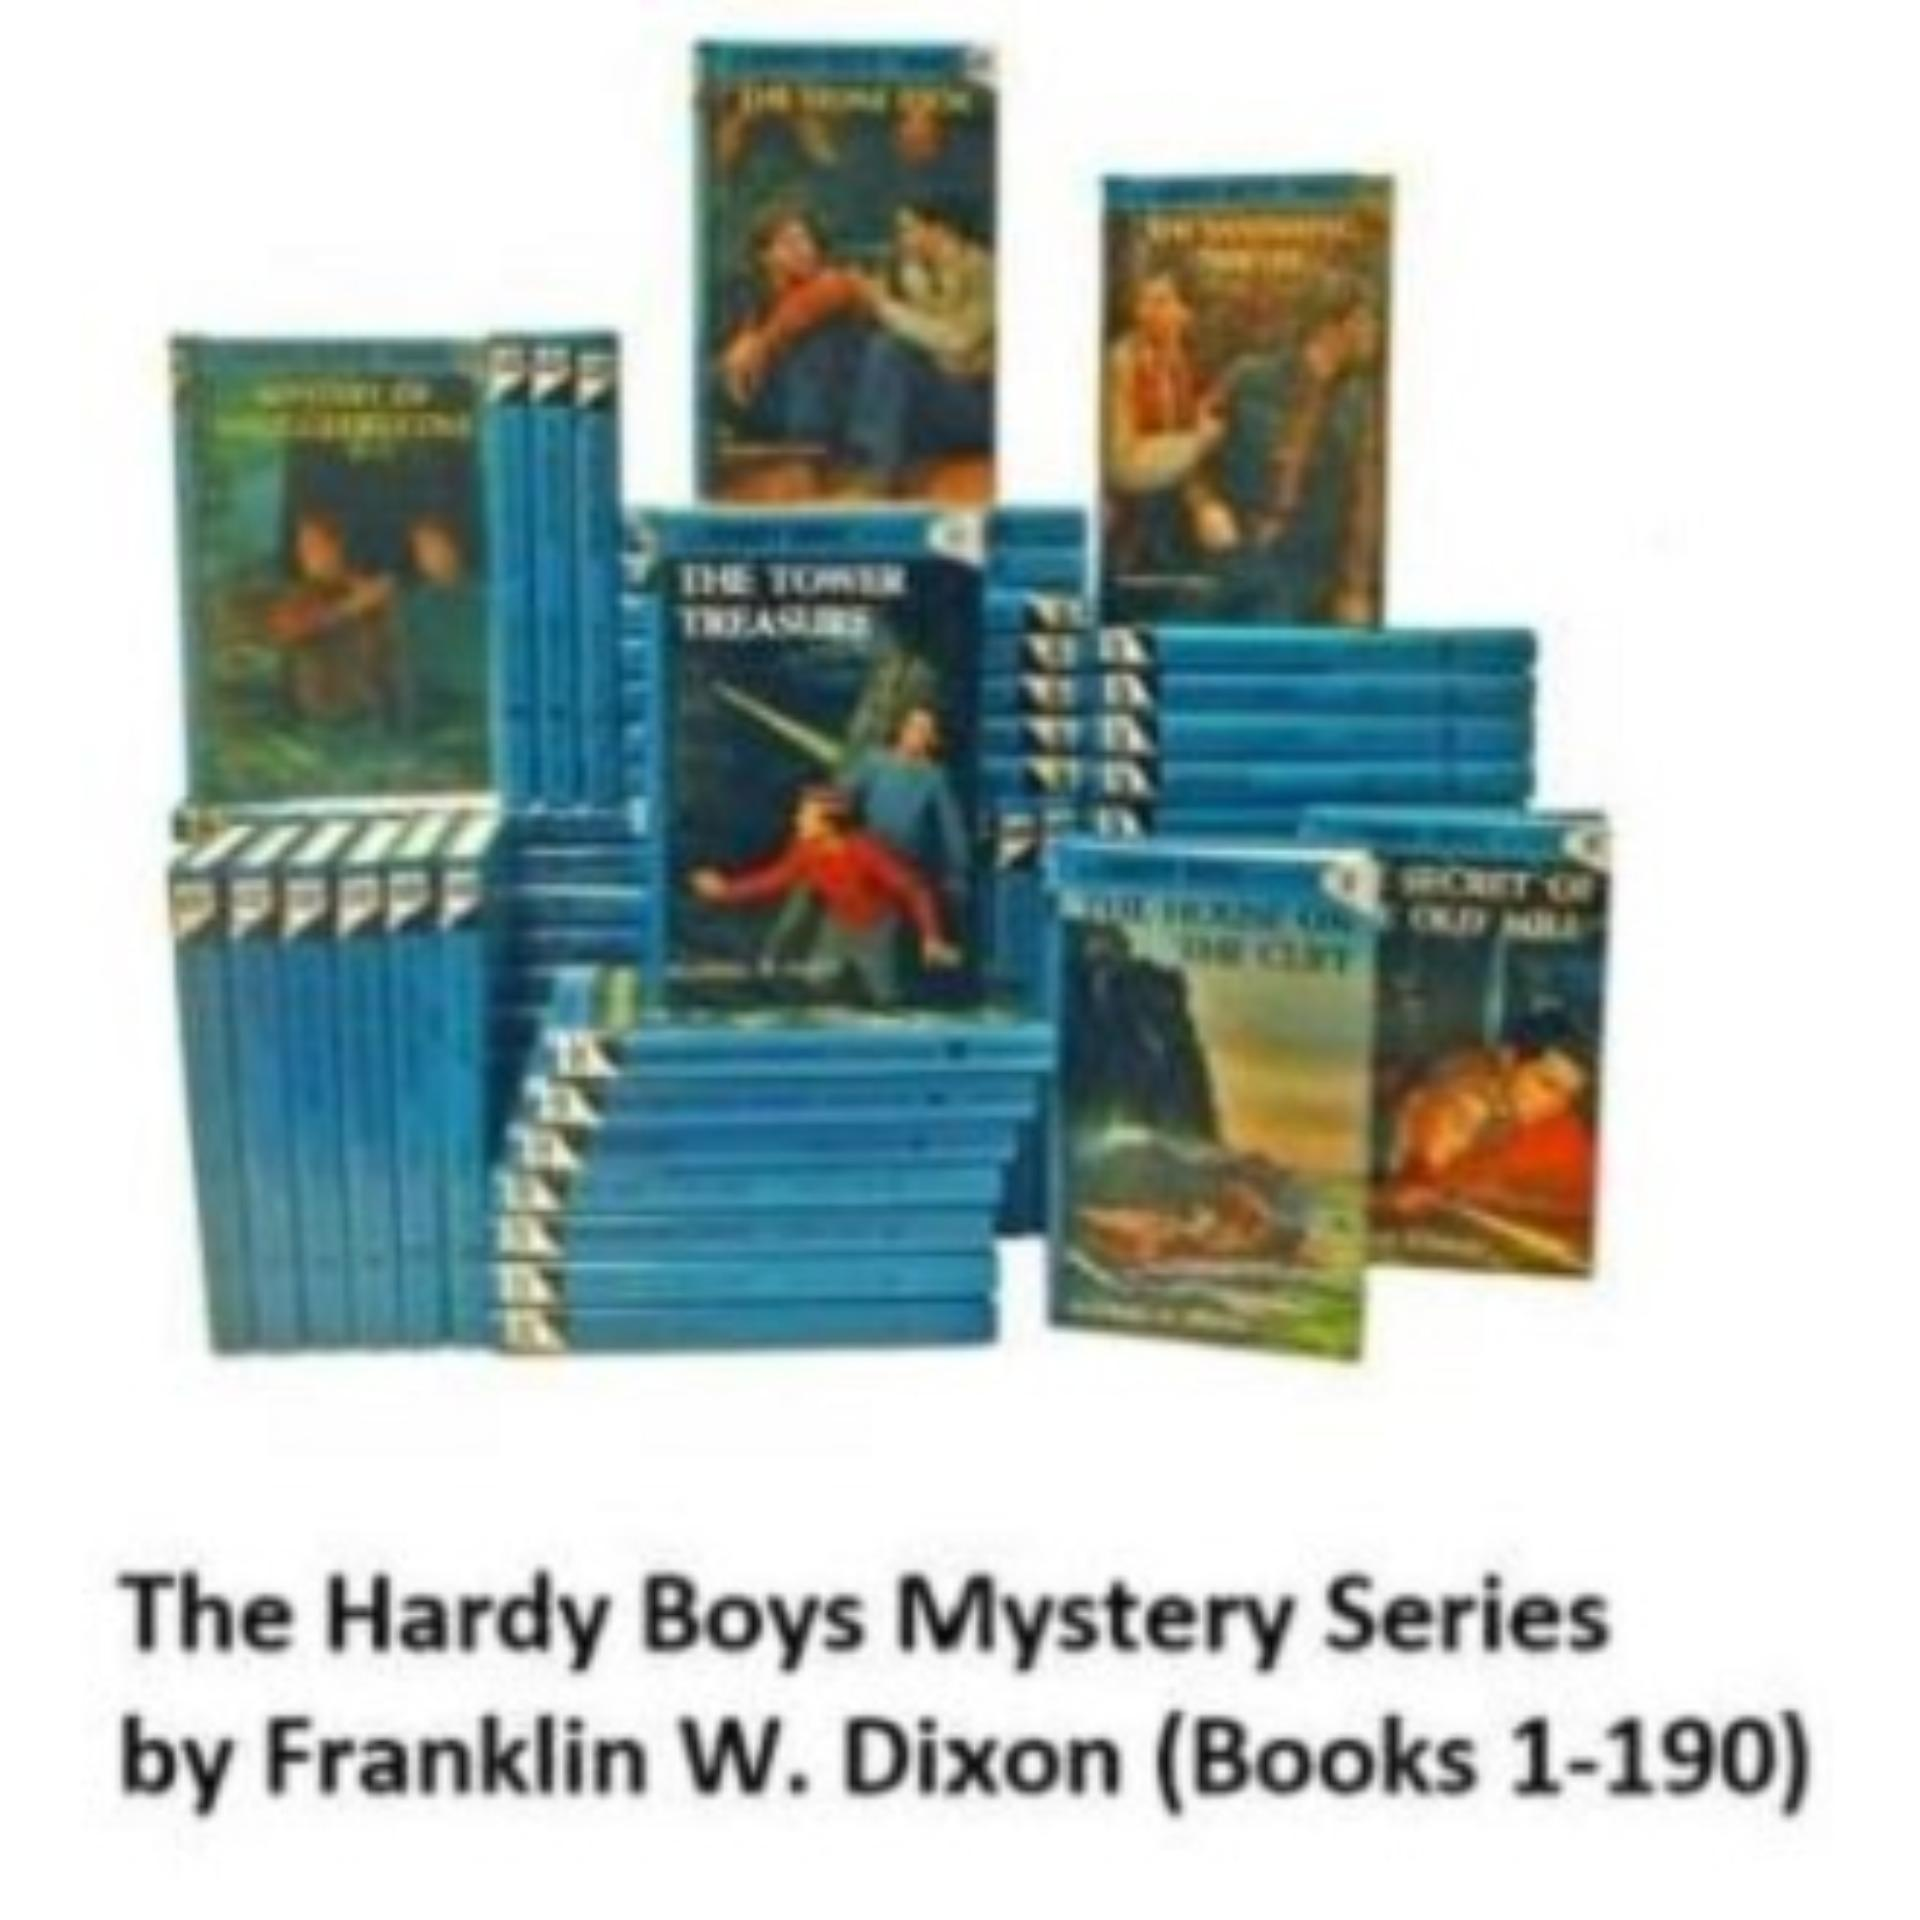 The Hardy Boys Mystery Series 1-190 by Franklin W. Dixon eBooks (Epub)